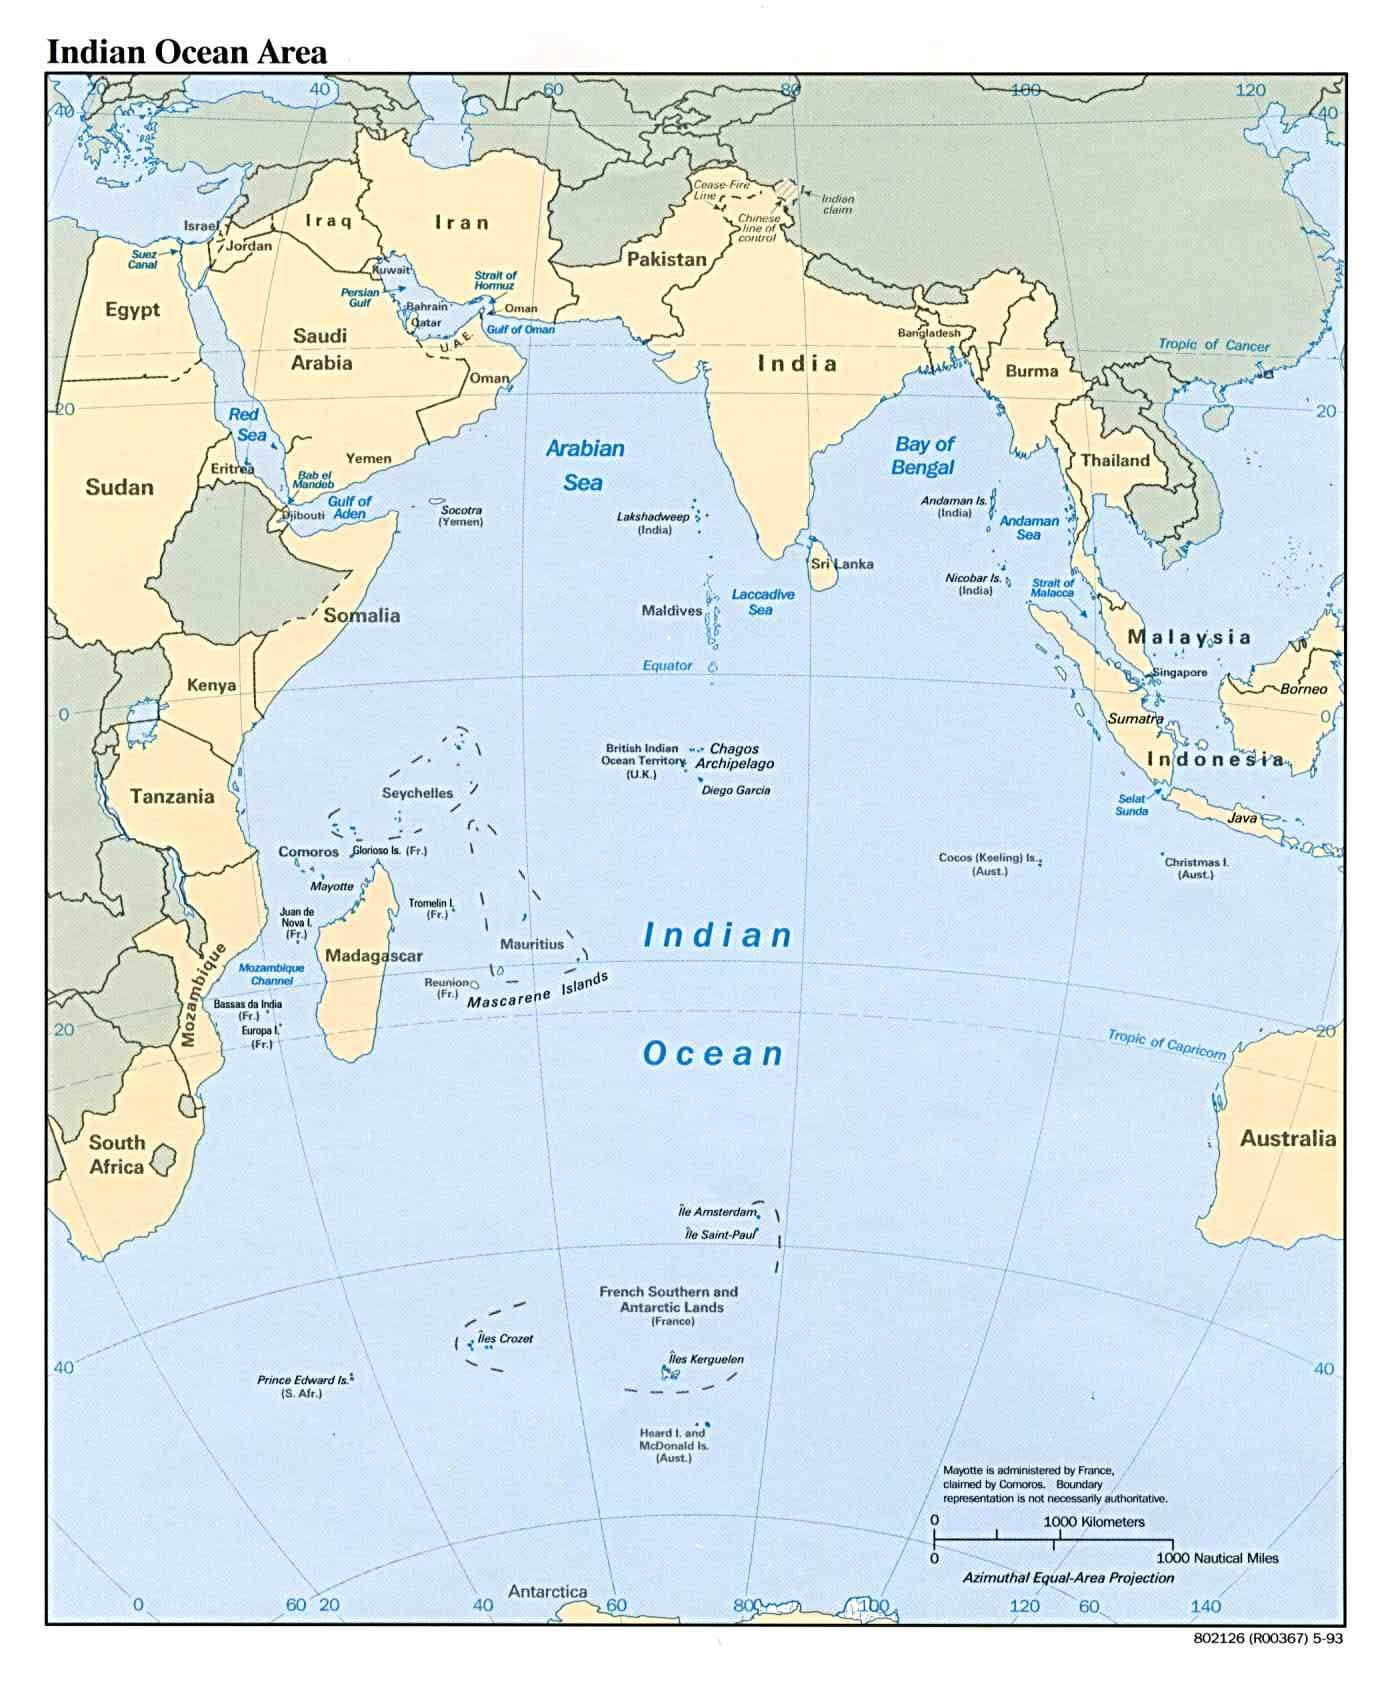 213 oceans Madagascar is closest to the Indian Ocean The Indian